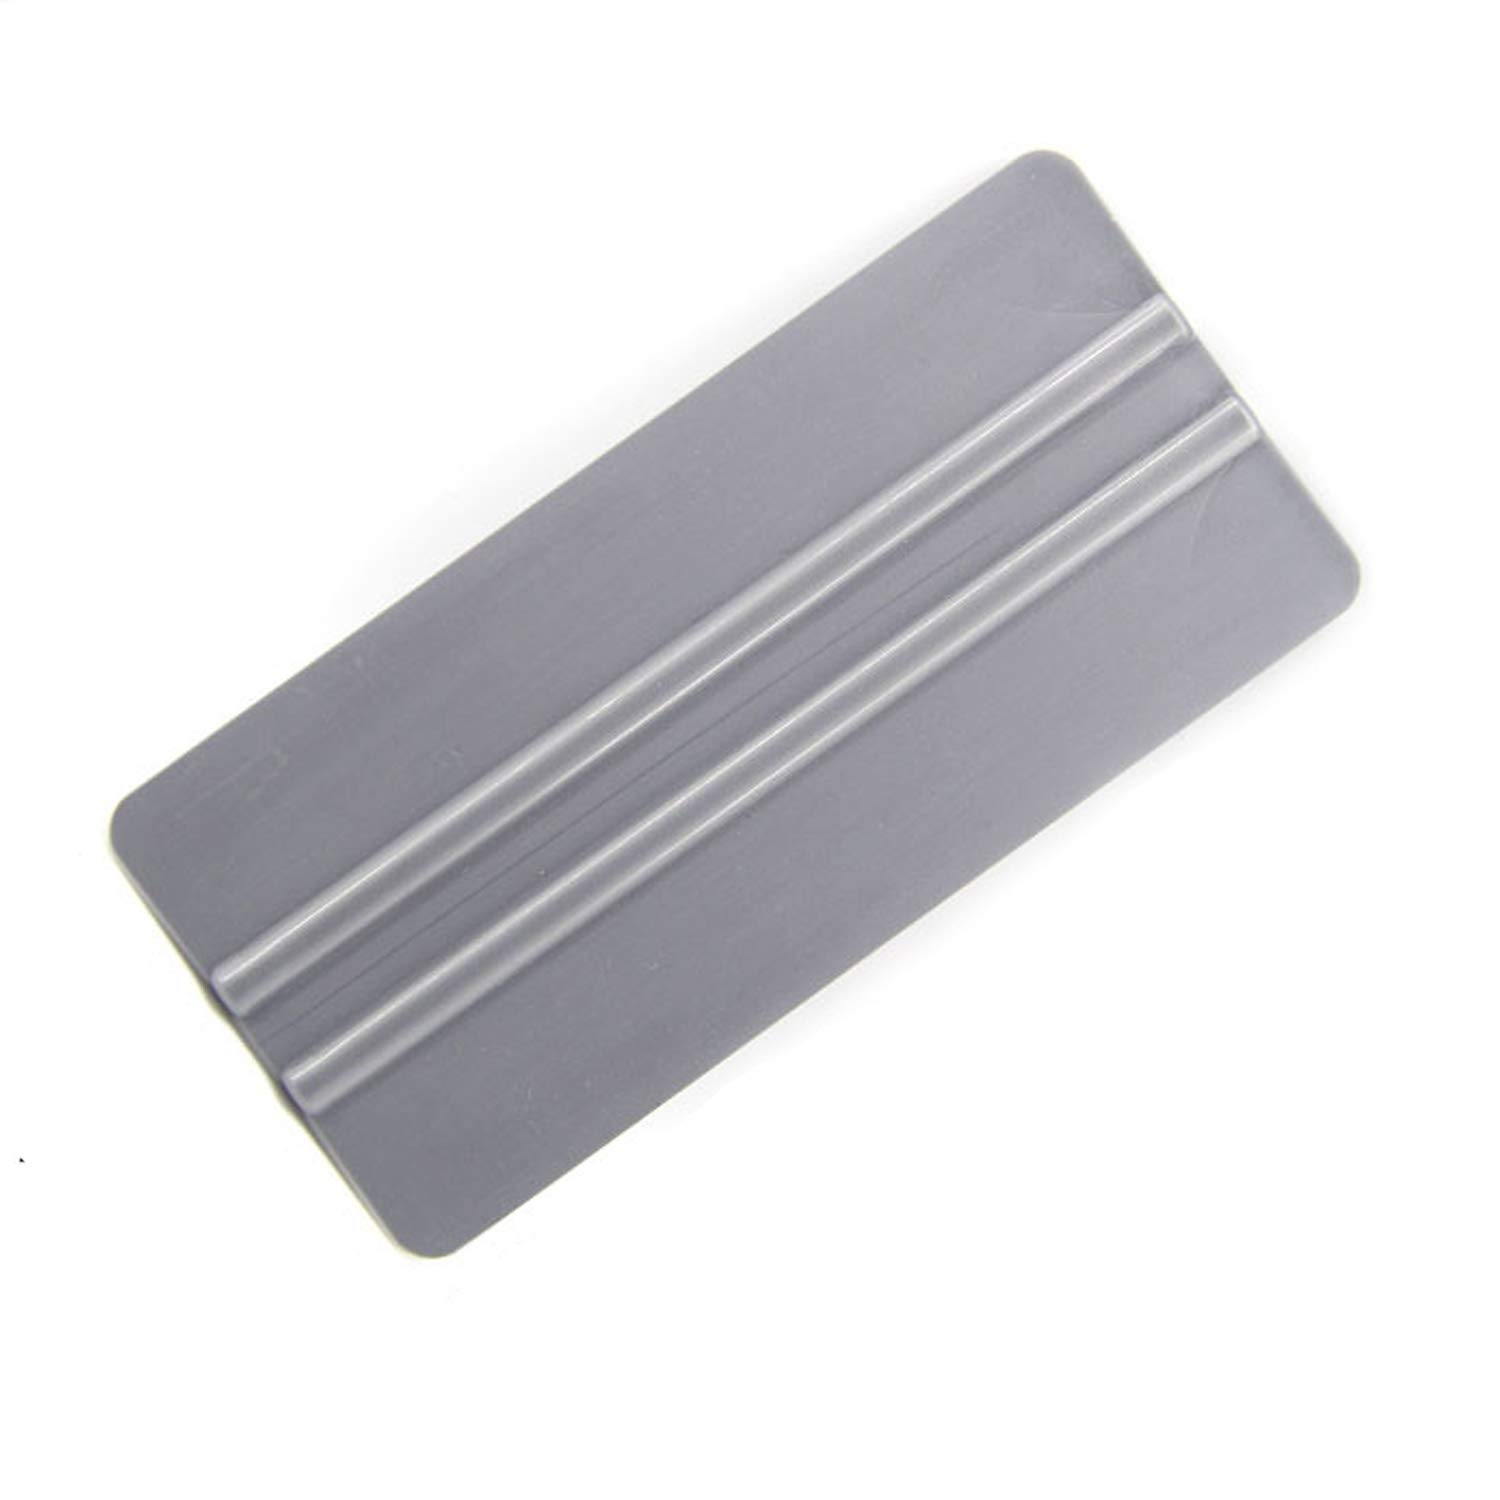 5559014624 GUGUGI CARTINTS 6 Inch Auto Window Tint Vinyl Wrap Tool Soft Squeegee Card Squeegee Wallpaper Install Scraper Silver